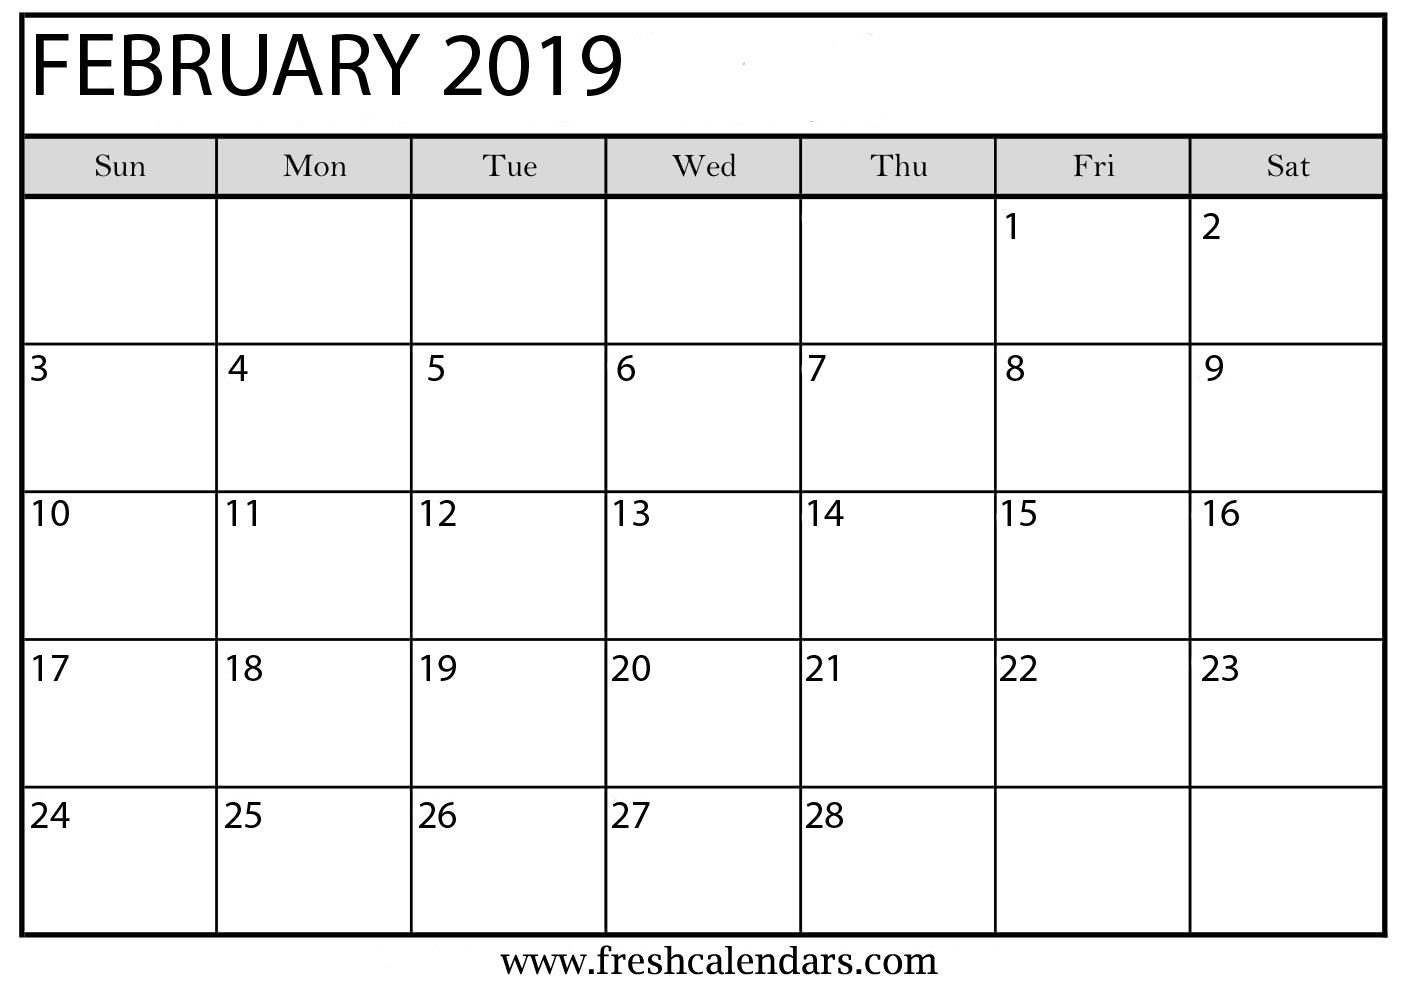 Monthly Calendar Template 2019 February February 2019 Calendar Printable   Fresh Calendars